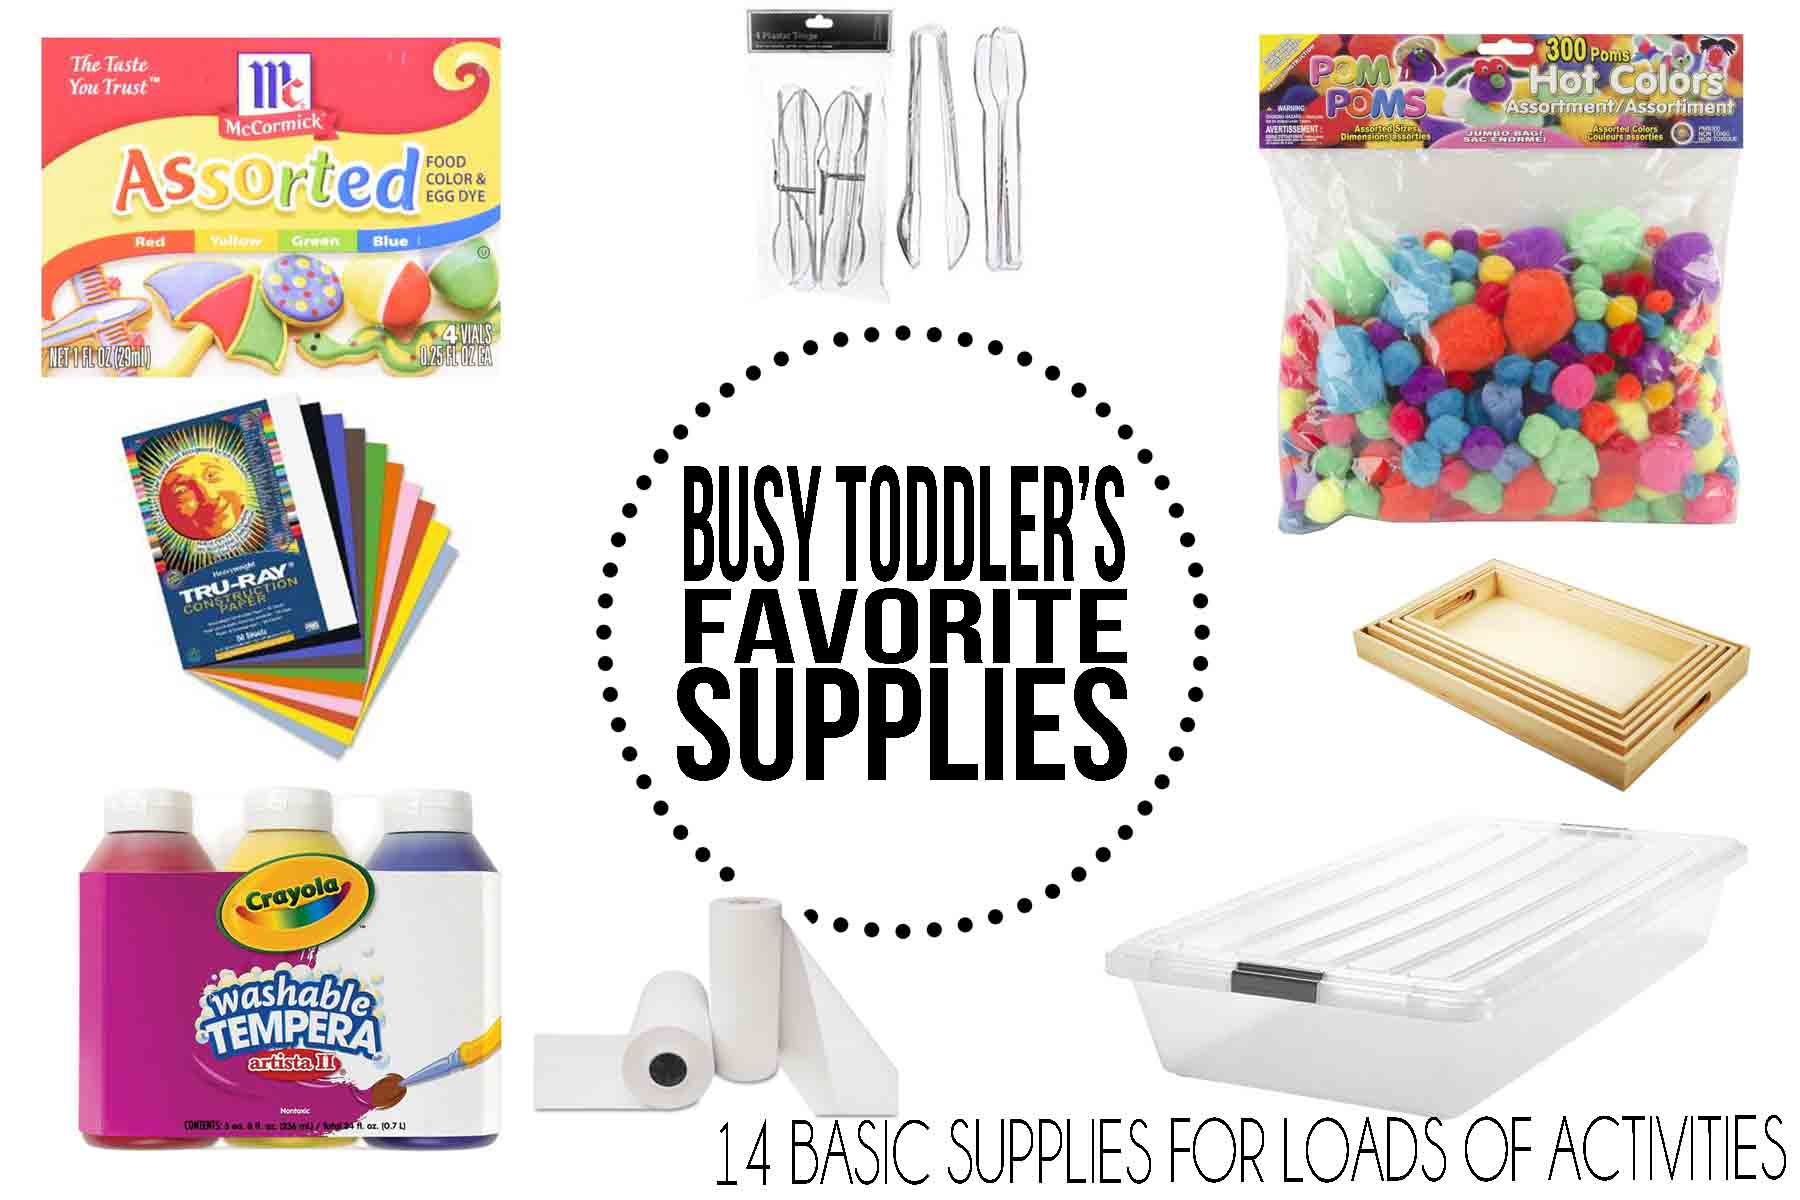 Toddler Activity Supplies: Basic supplies to have on hand